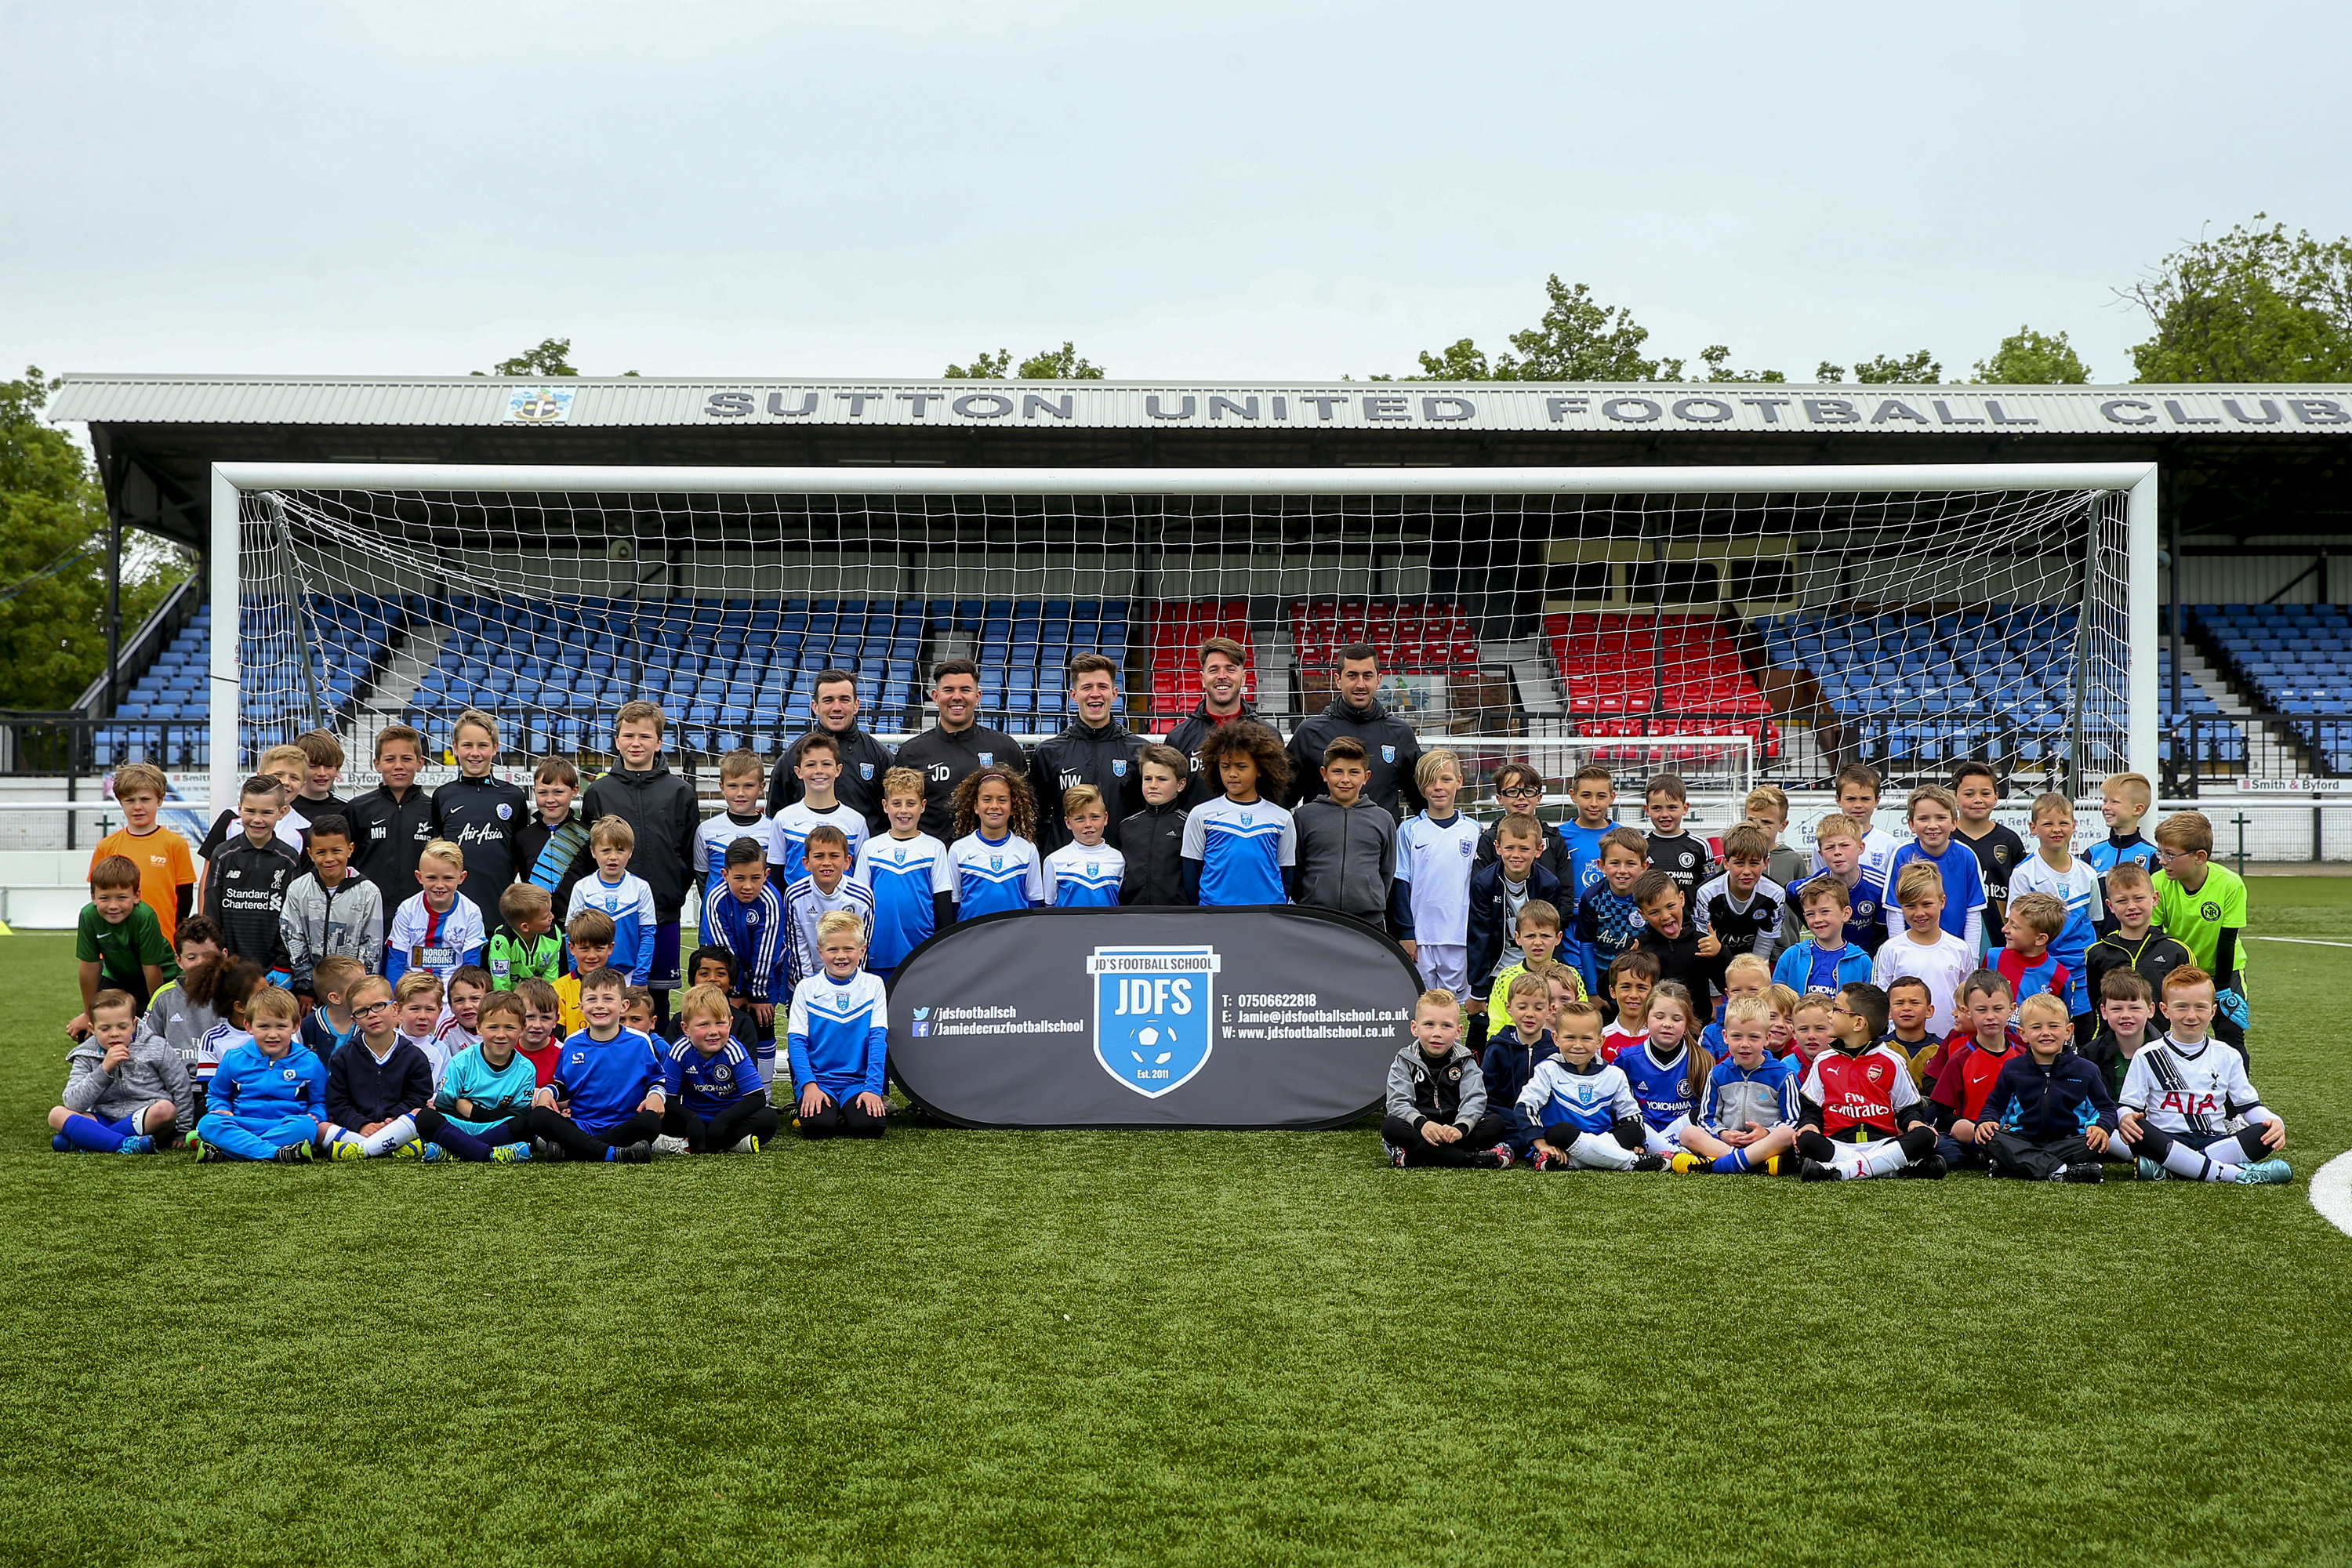 JD Football School. 2nd June 2016. Photo by Jordan Mansifled/www.jordanphoto.co.uk